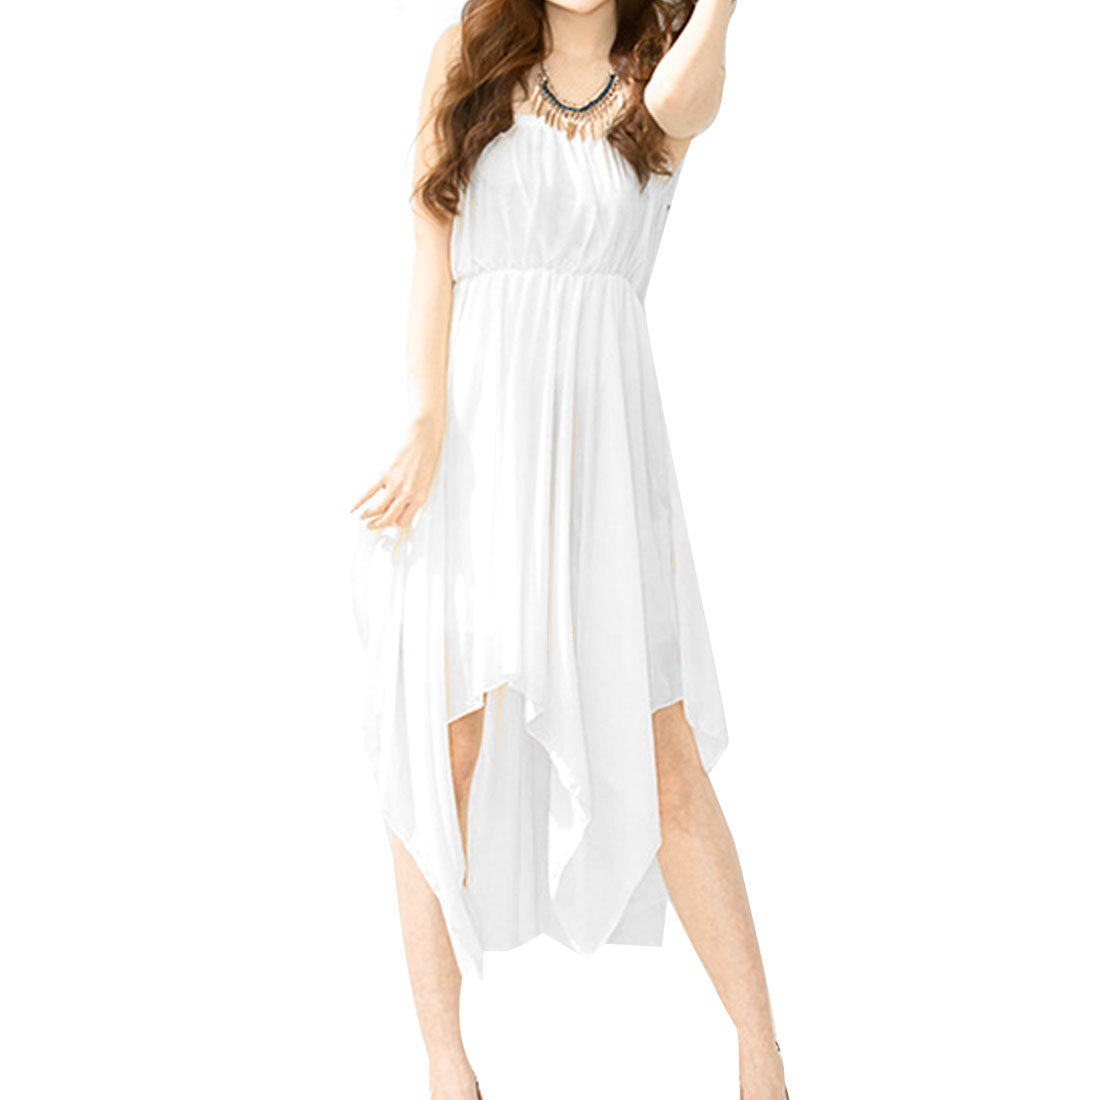 Elastic Bust Inner Lining White Sheer Chiffon Tube Dress XS for Women